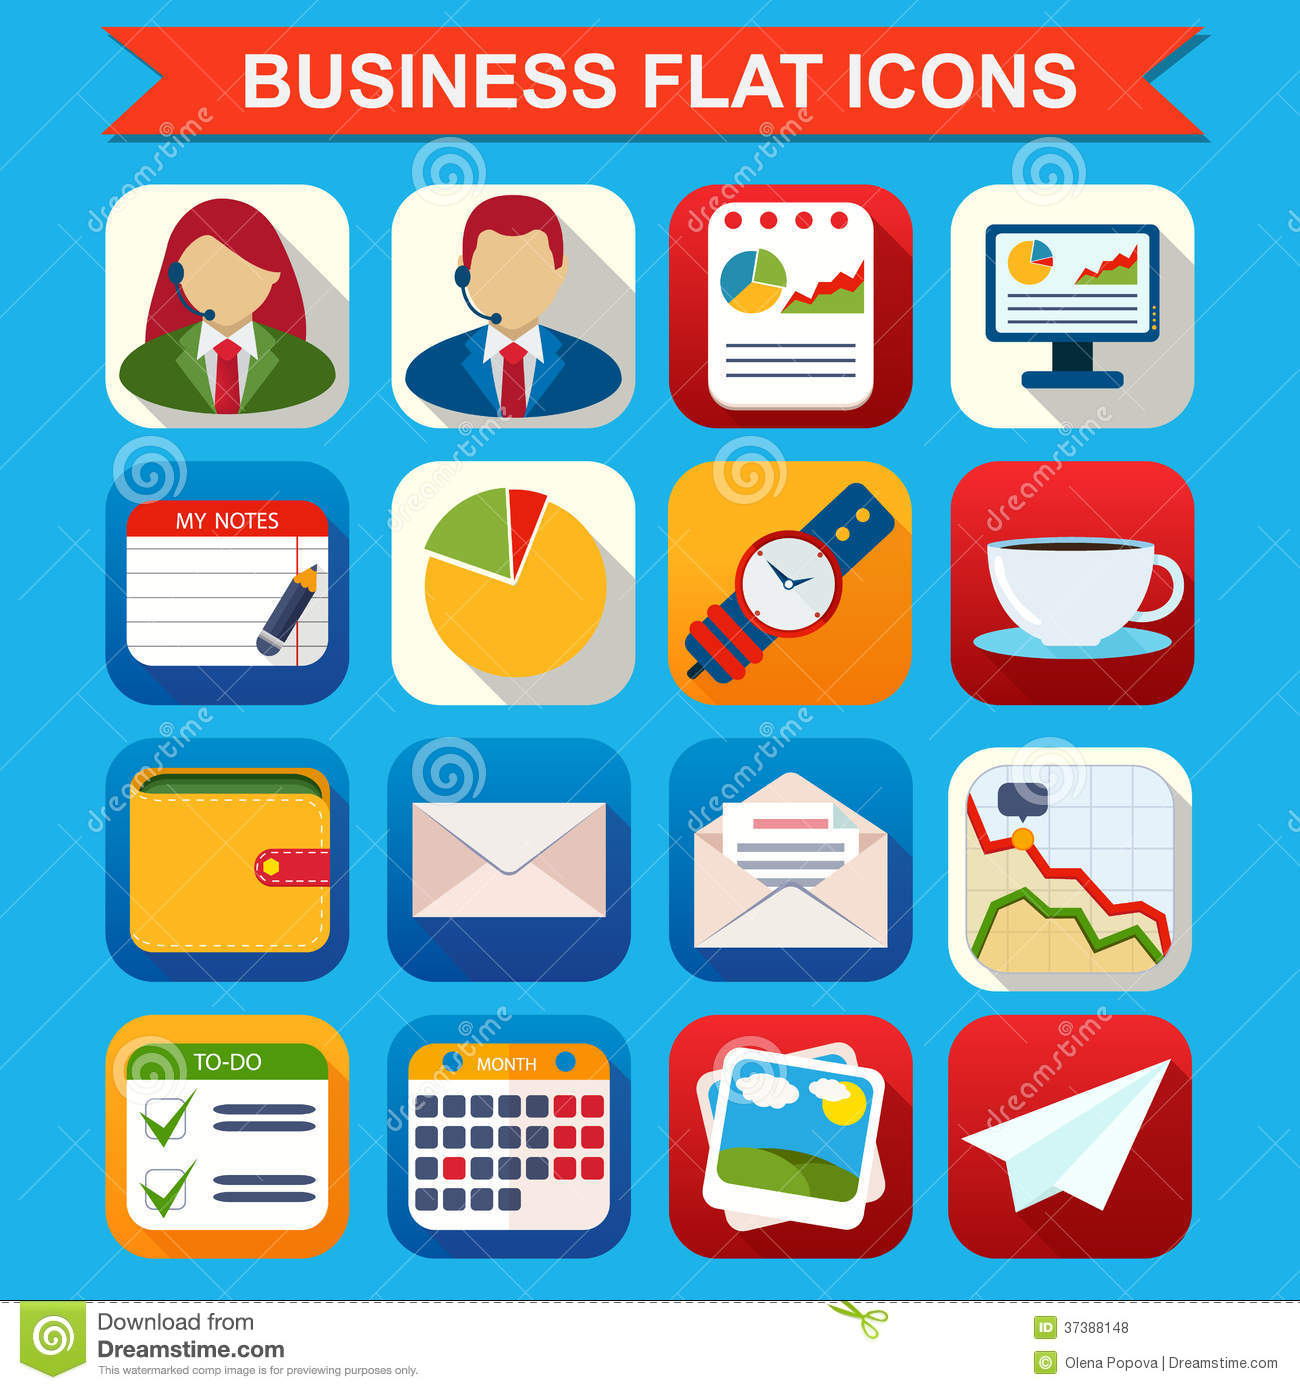 Flat Business Icons Vector Free